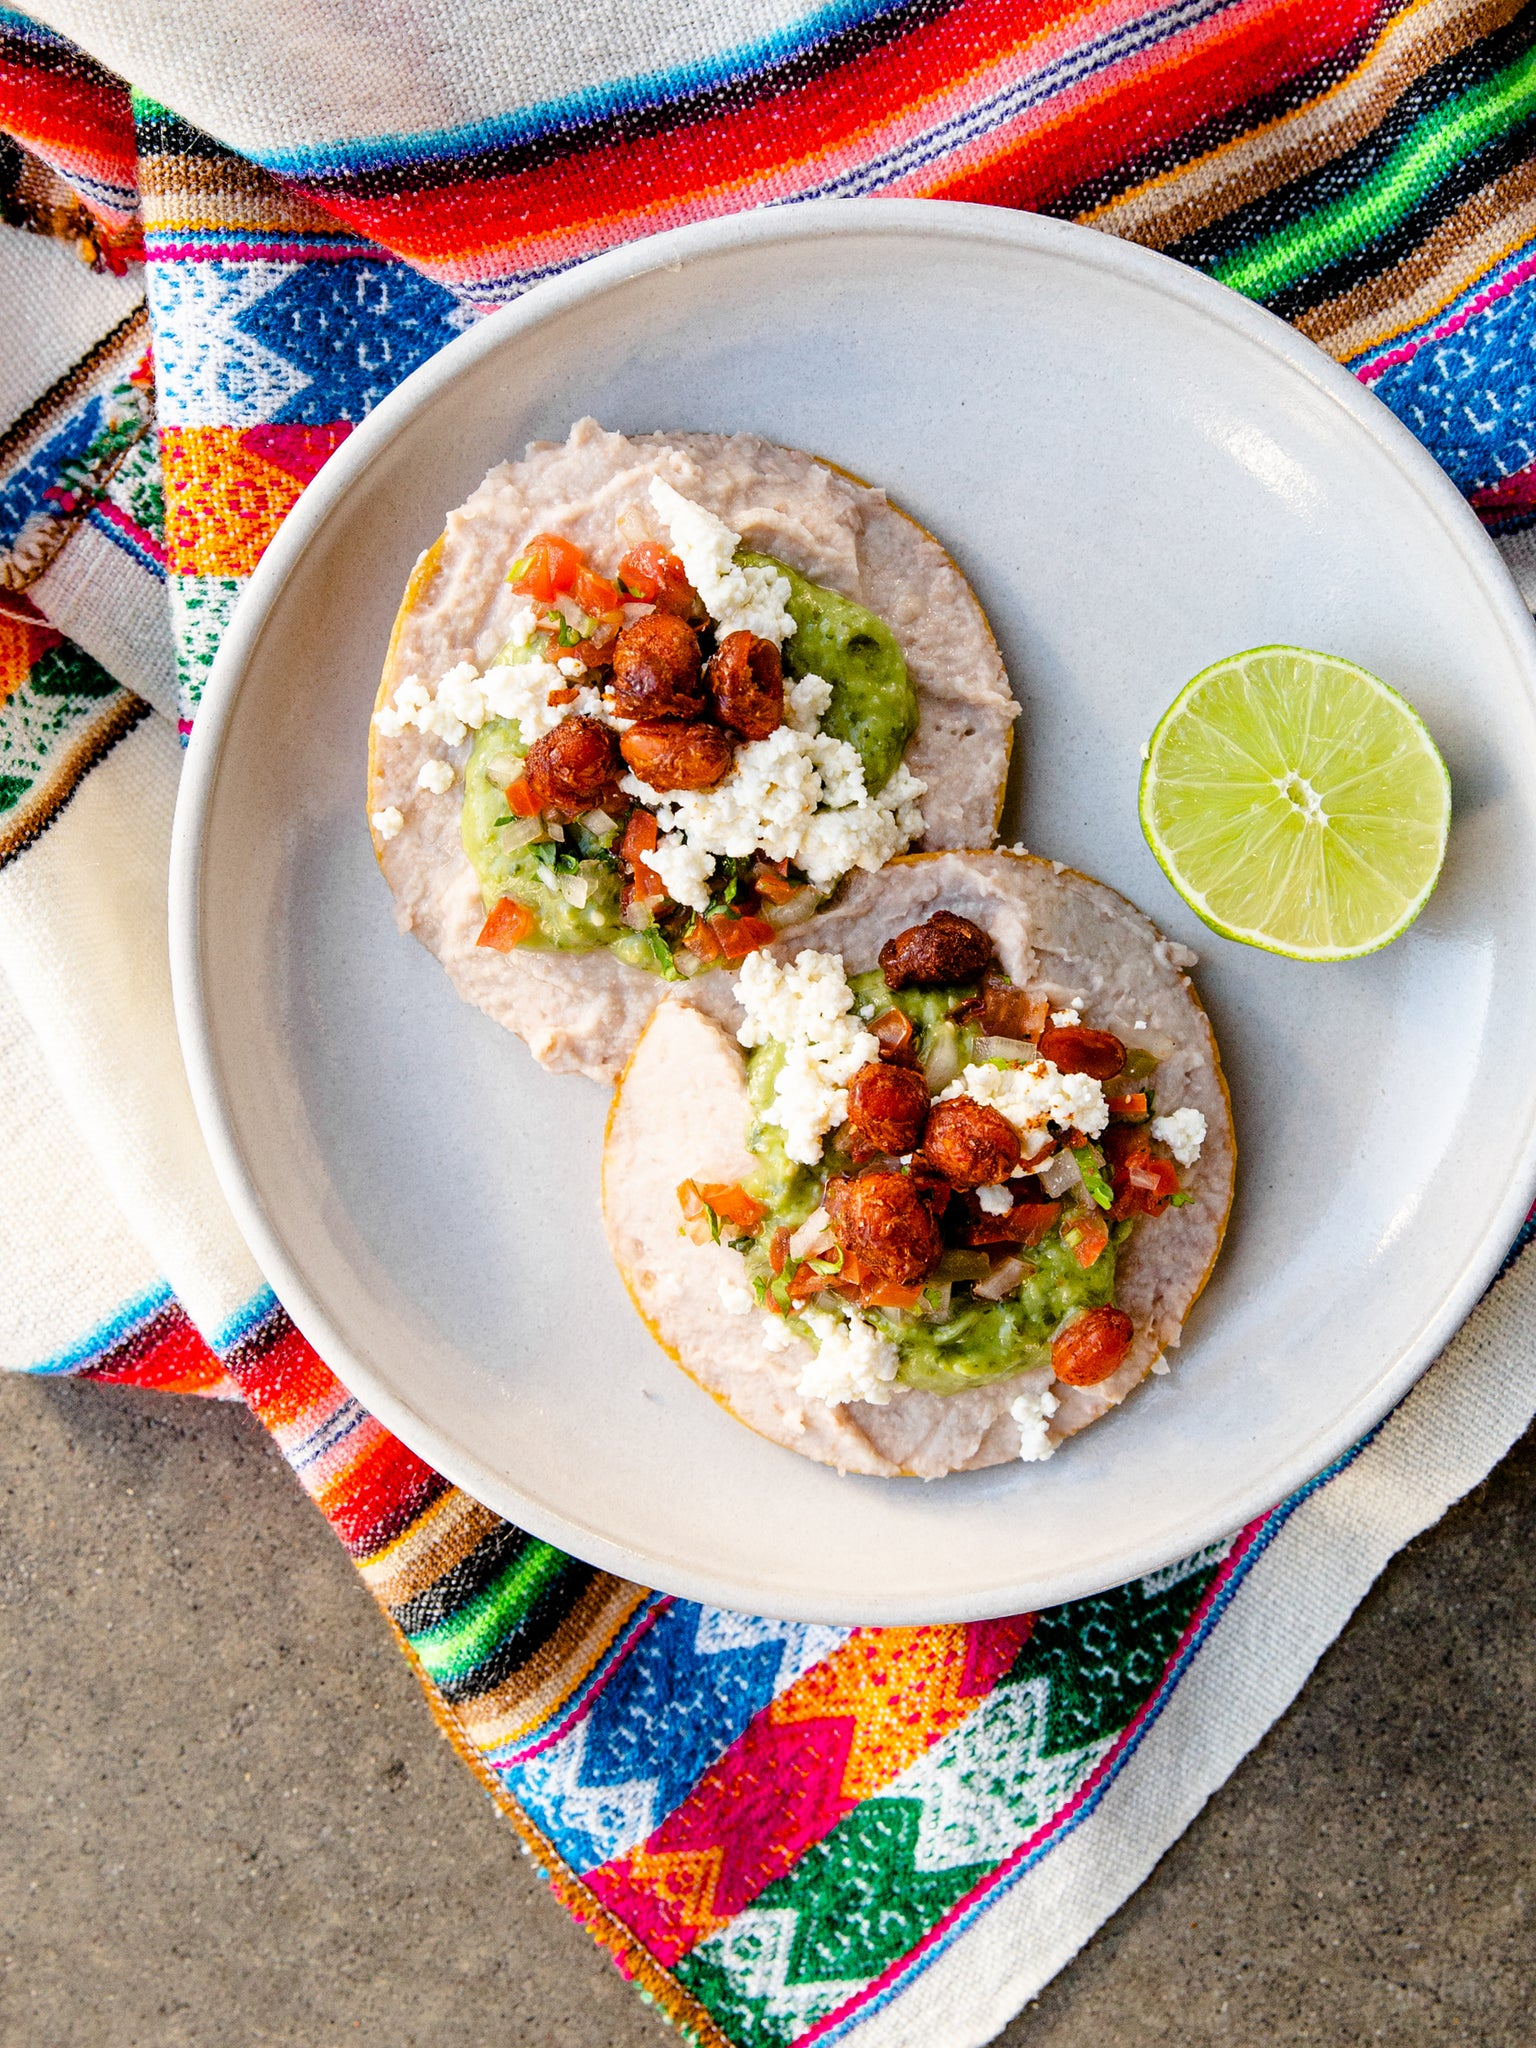 Heat at home Refried Bean Tostada Set (Taco)